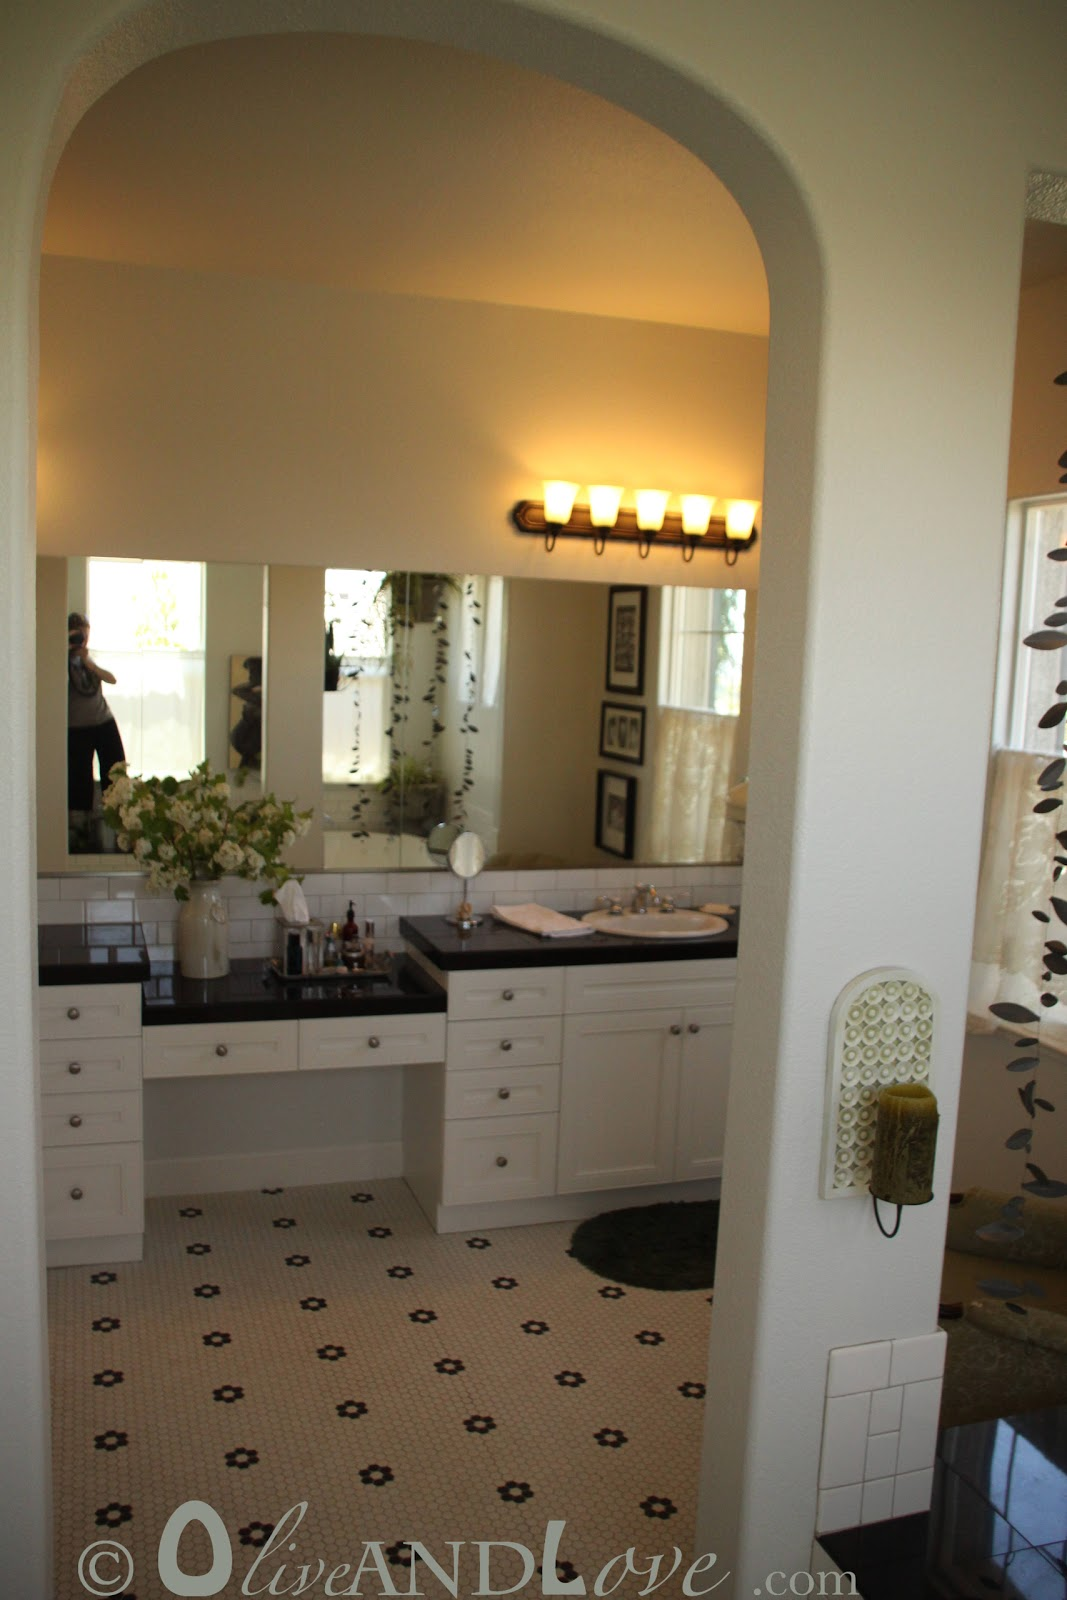 House Tour Master Bath: Olive And Love » Master Bath Home Tour